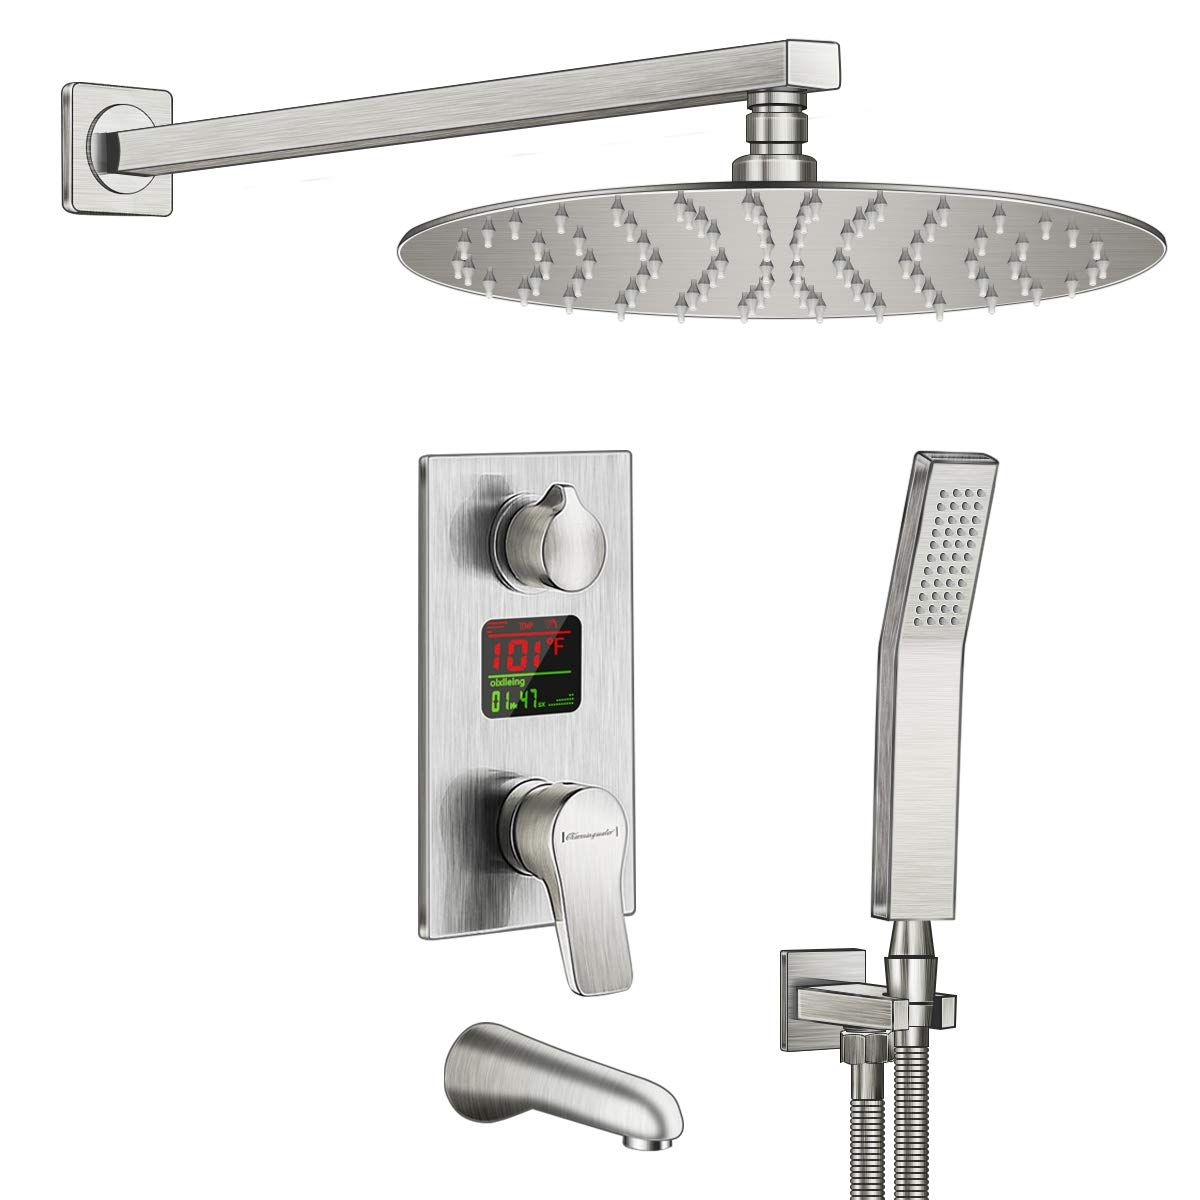 Charmingwater Shower System Shower Faucet Set With Tub Spout And